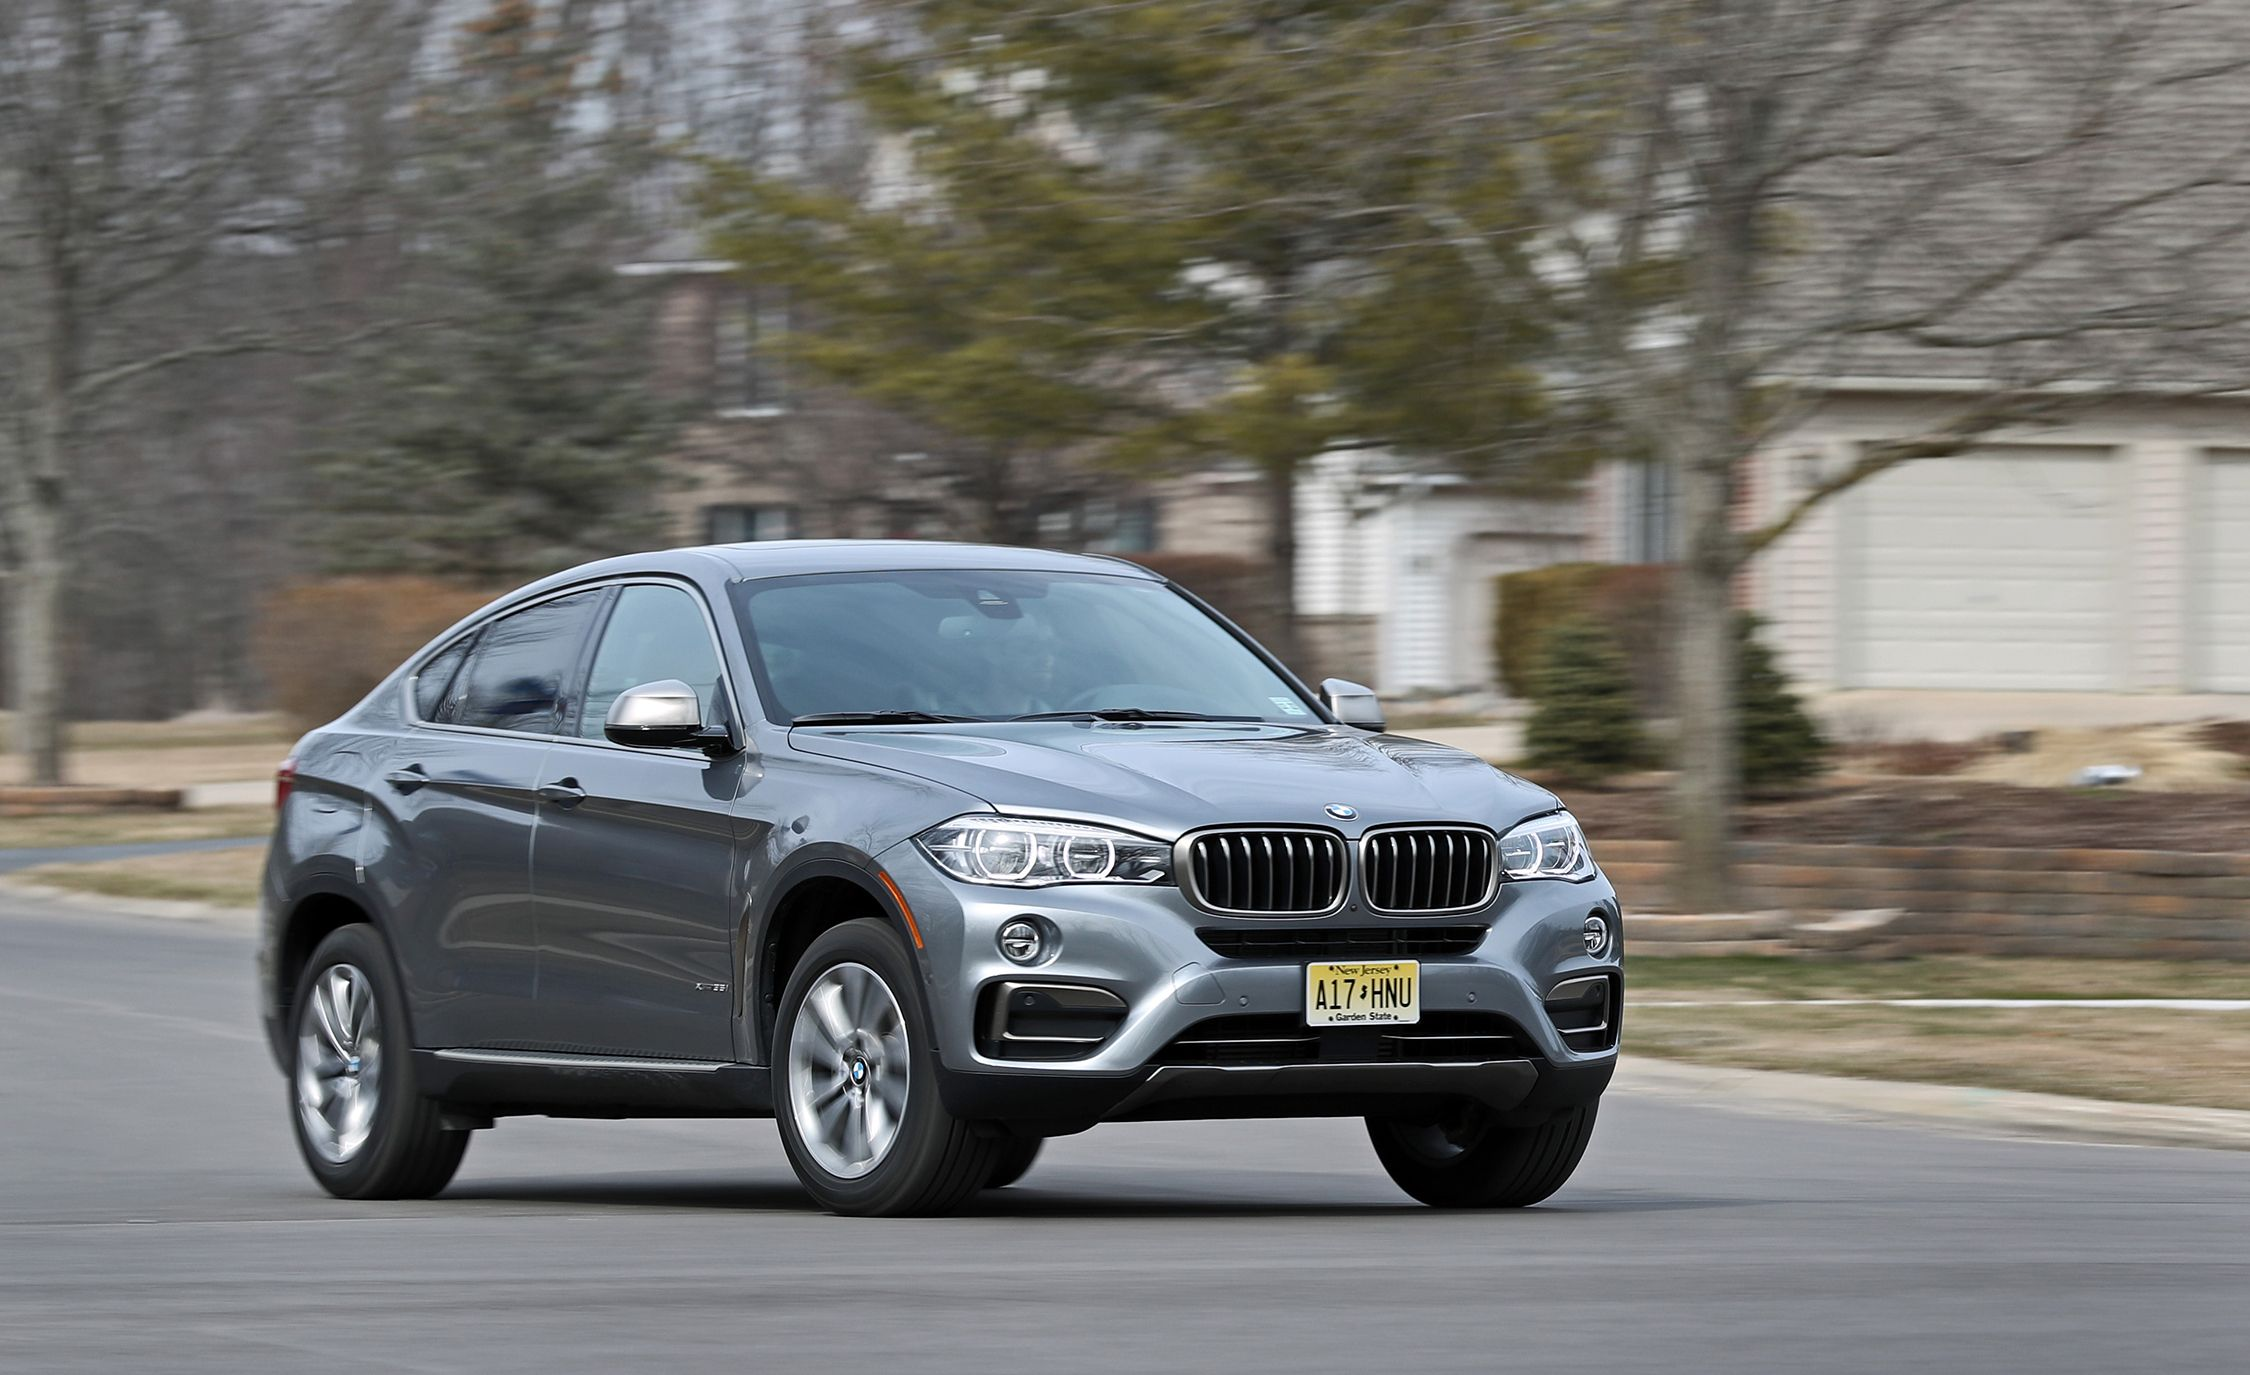 2018 Bmw X6 Engine And Transmission Review Car And Driver